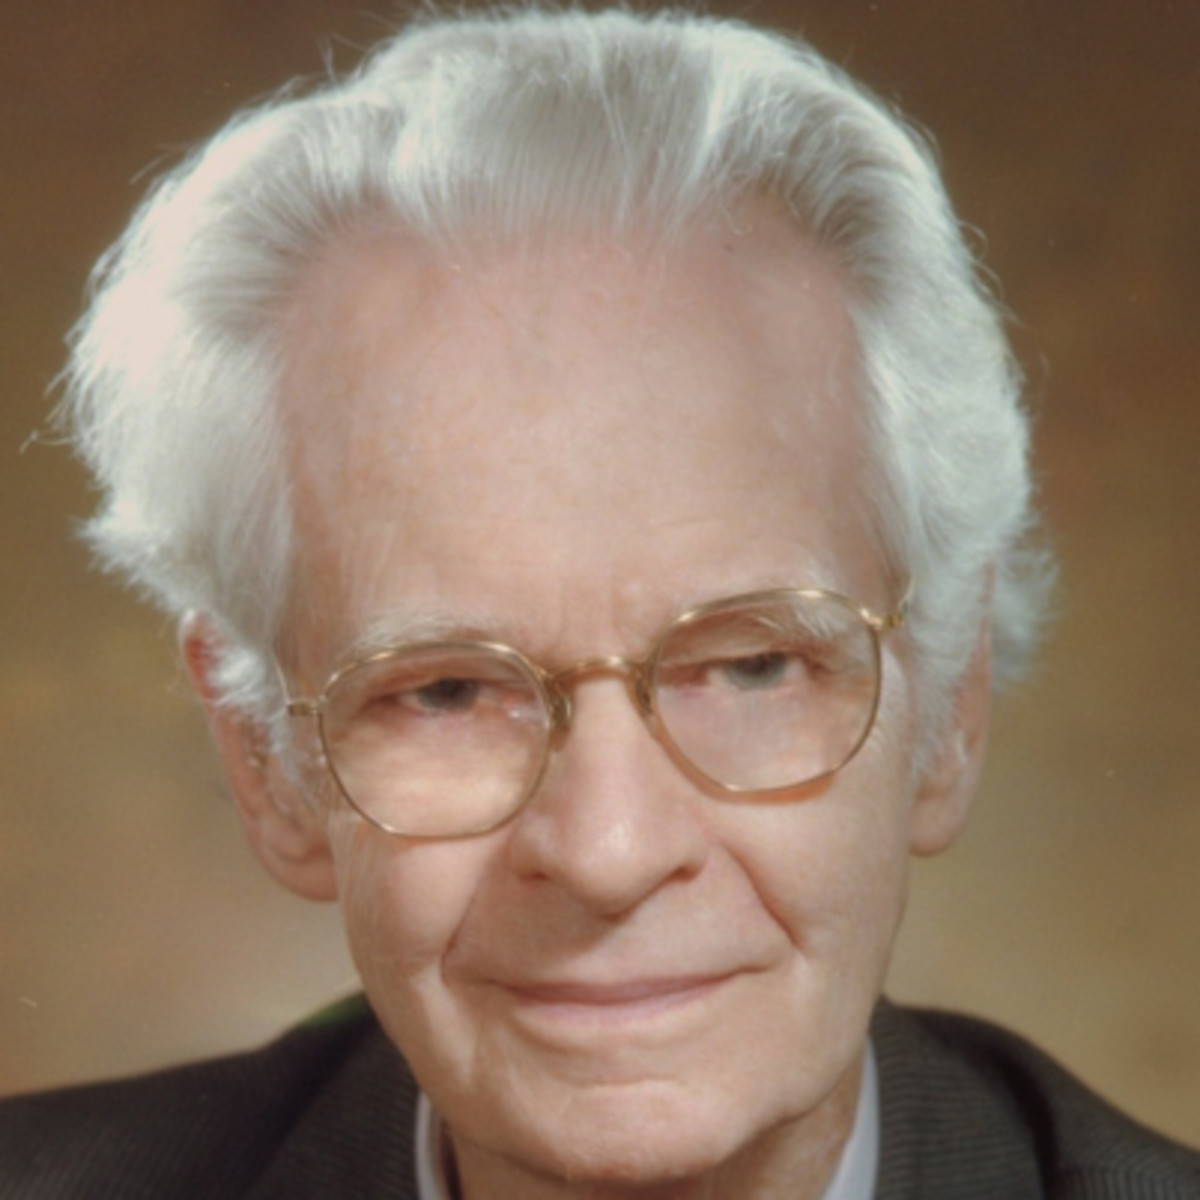 B.F. Skinner - Theory, Psychology & Facts - Biography